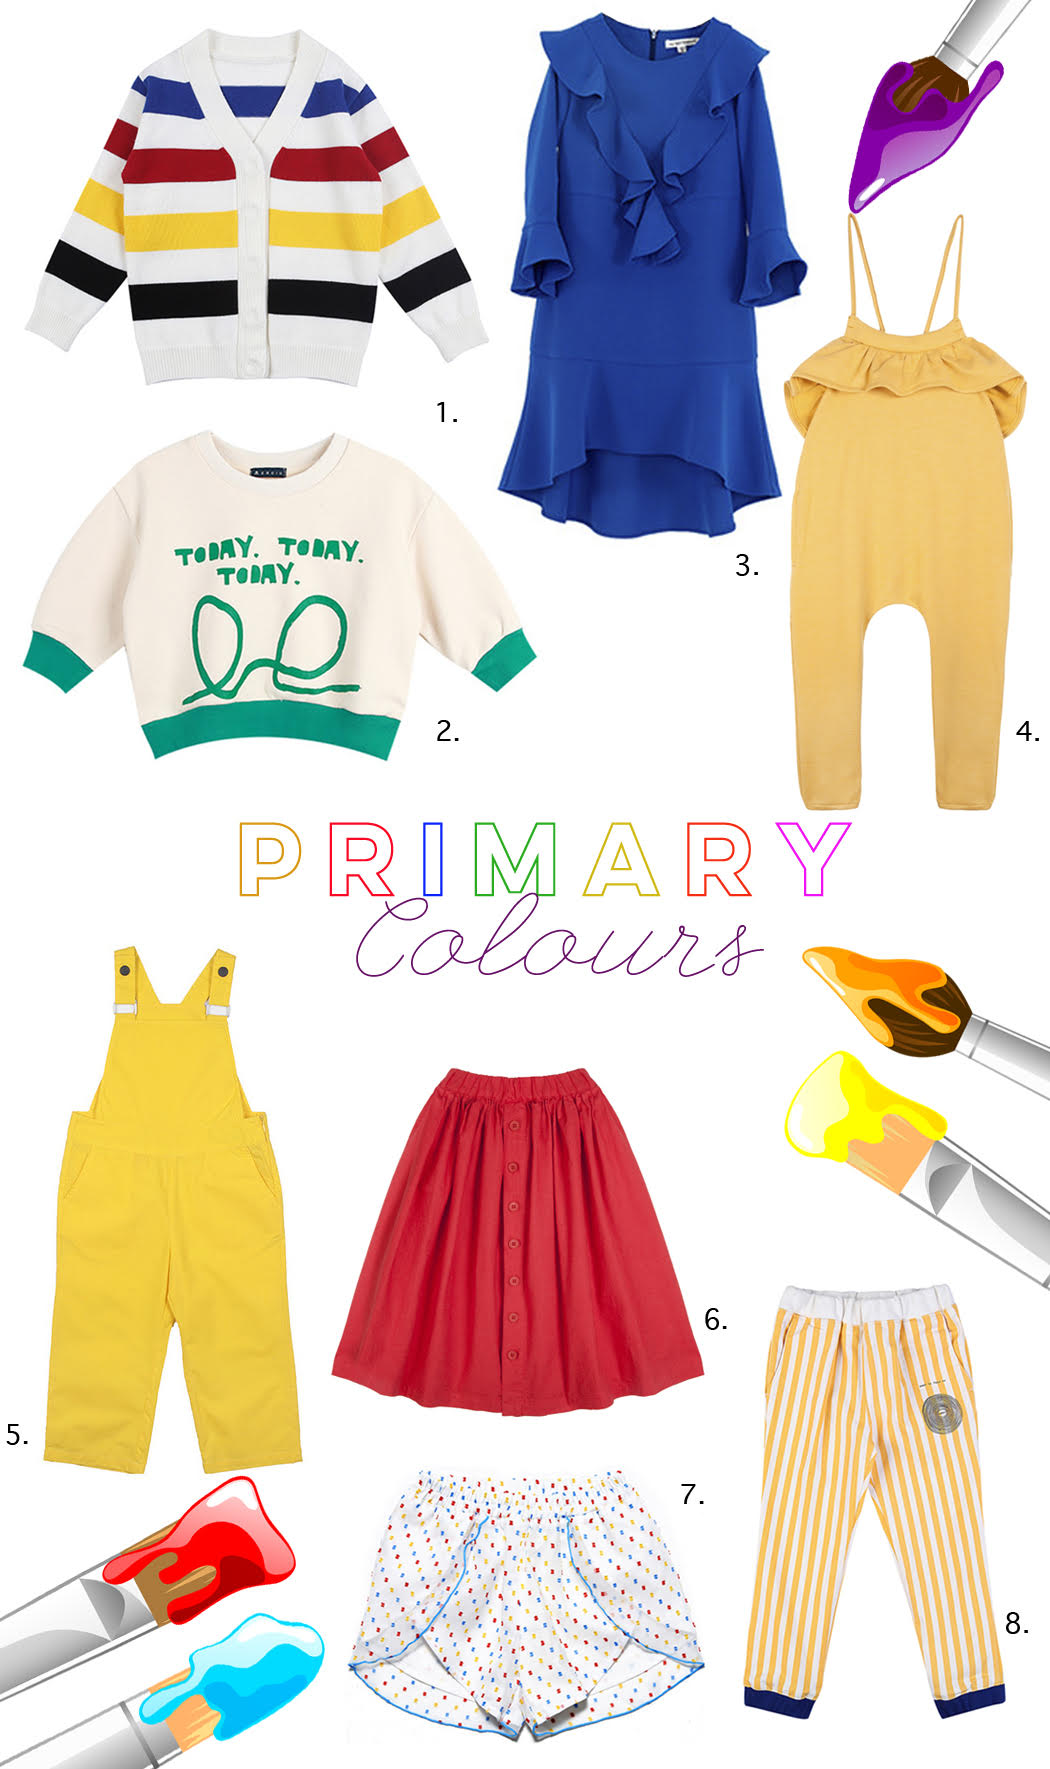 Junior Style Blog Korean Brands Edit by Sylvia Yim Primary Colours #kidsfashion #koreanbrands